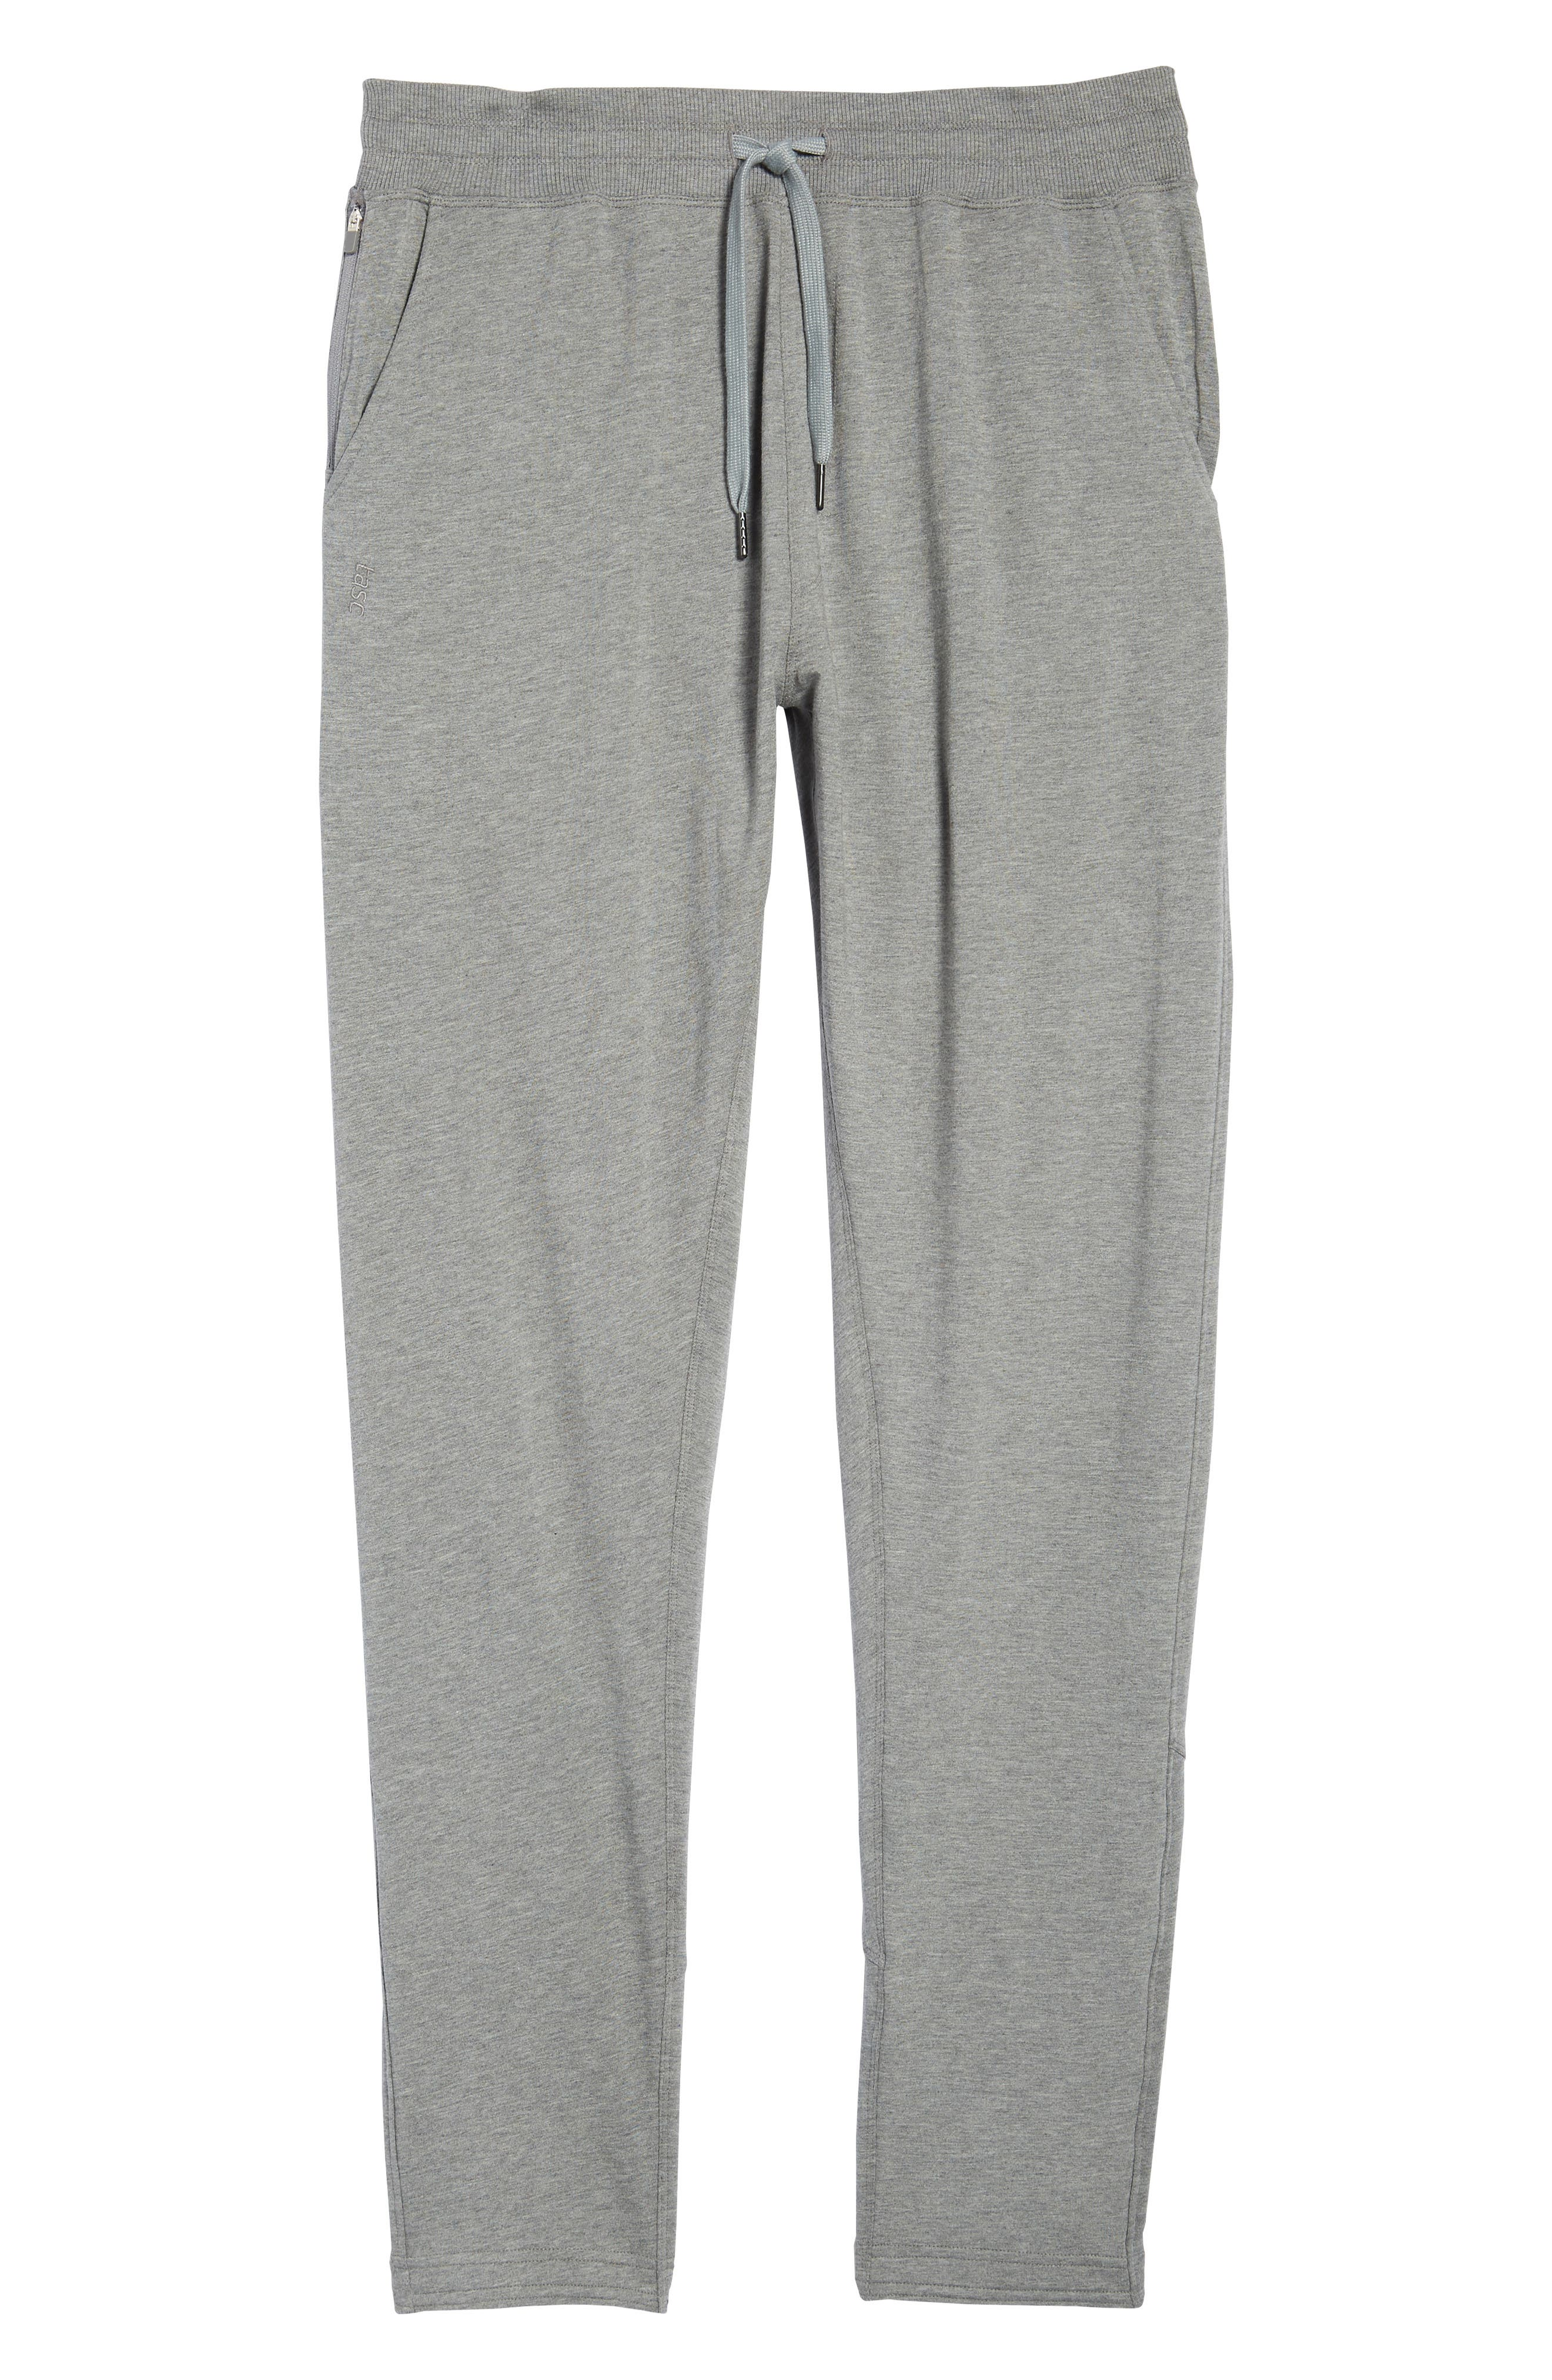 Legacy Lounge Pants,                             Alternate thumbnail 6, color,                             Heather Grey